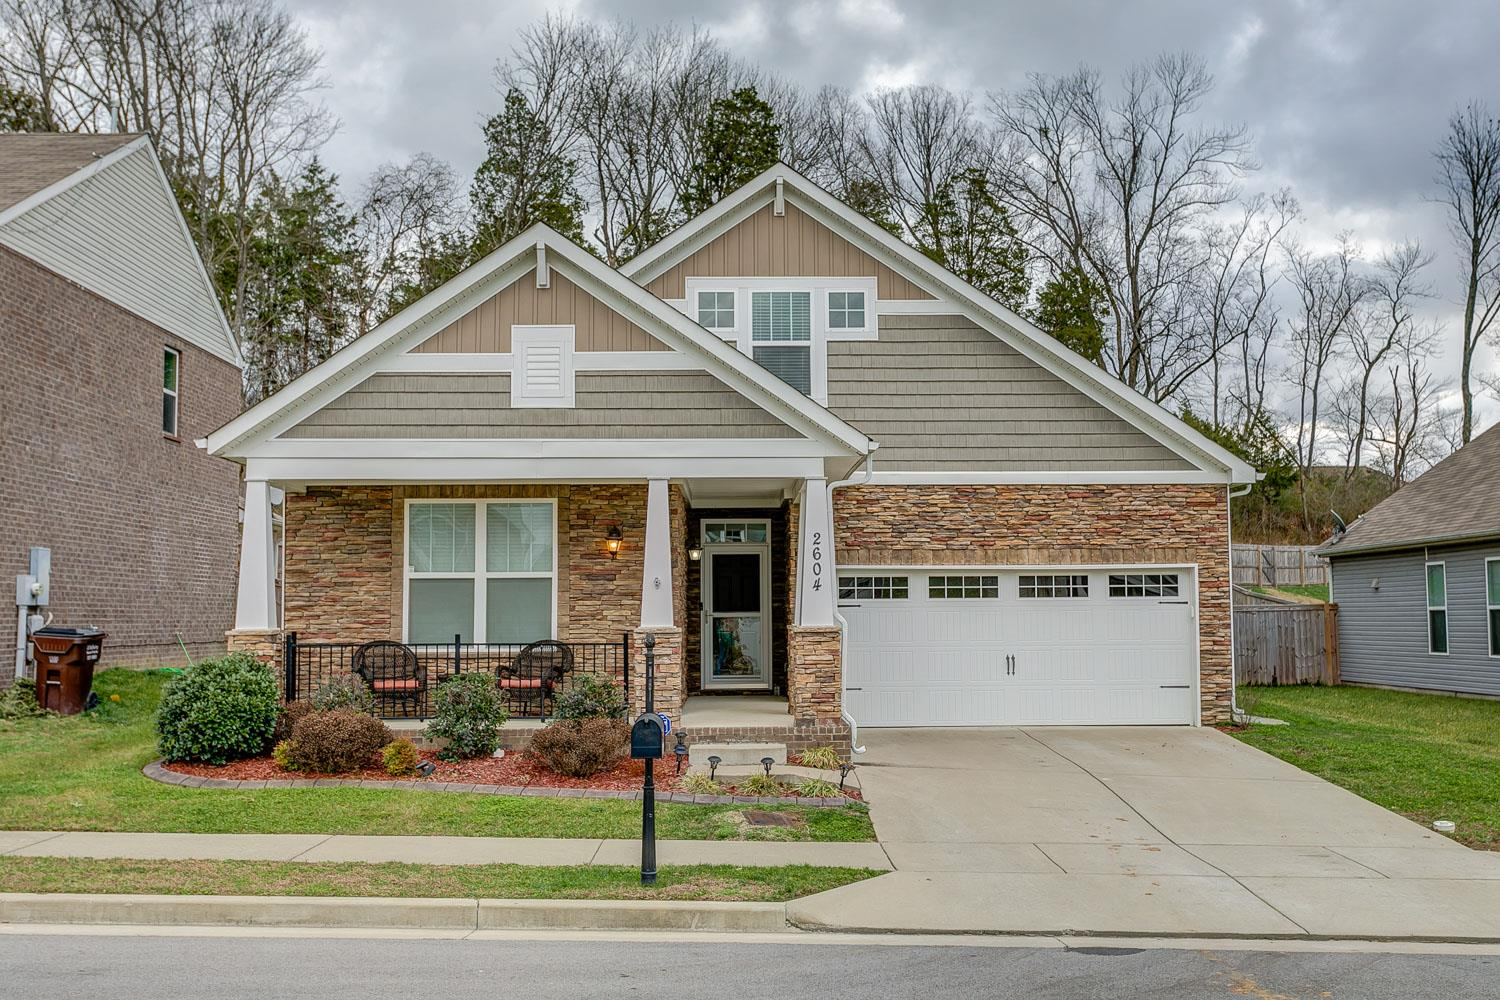 2604 Thicket Ridge Ct, Hermitage in Davidson County County, TN 37076 Home for Sale